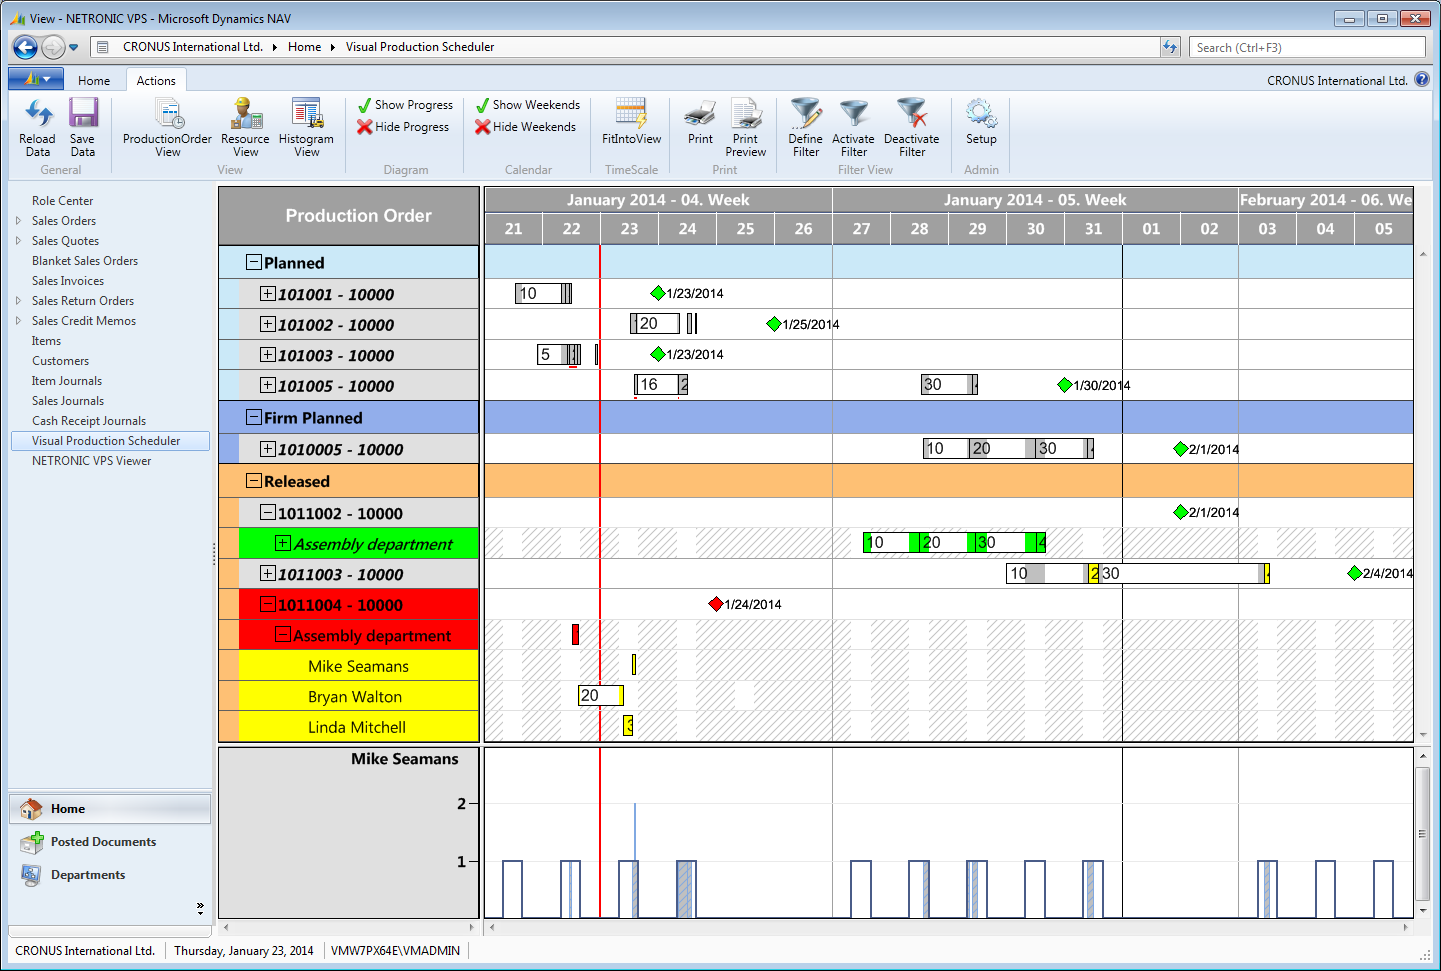 Visual Production Scheduler in action at ESK Schultze